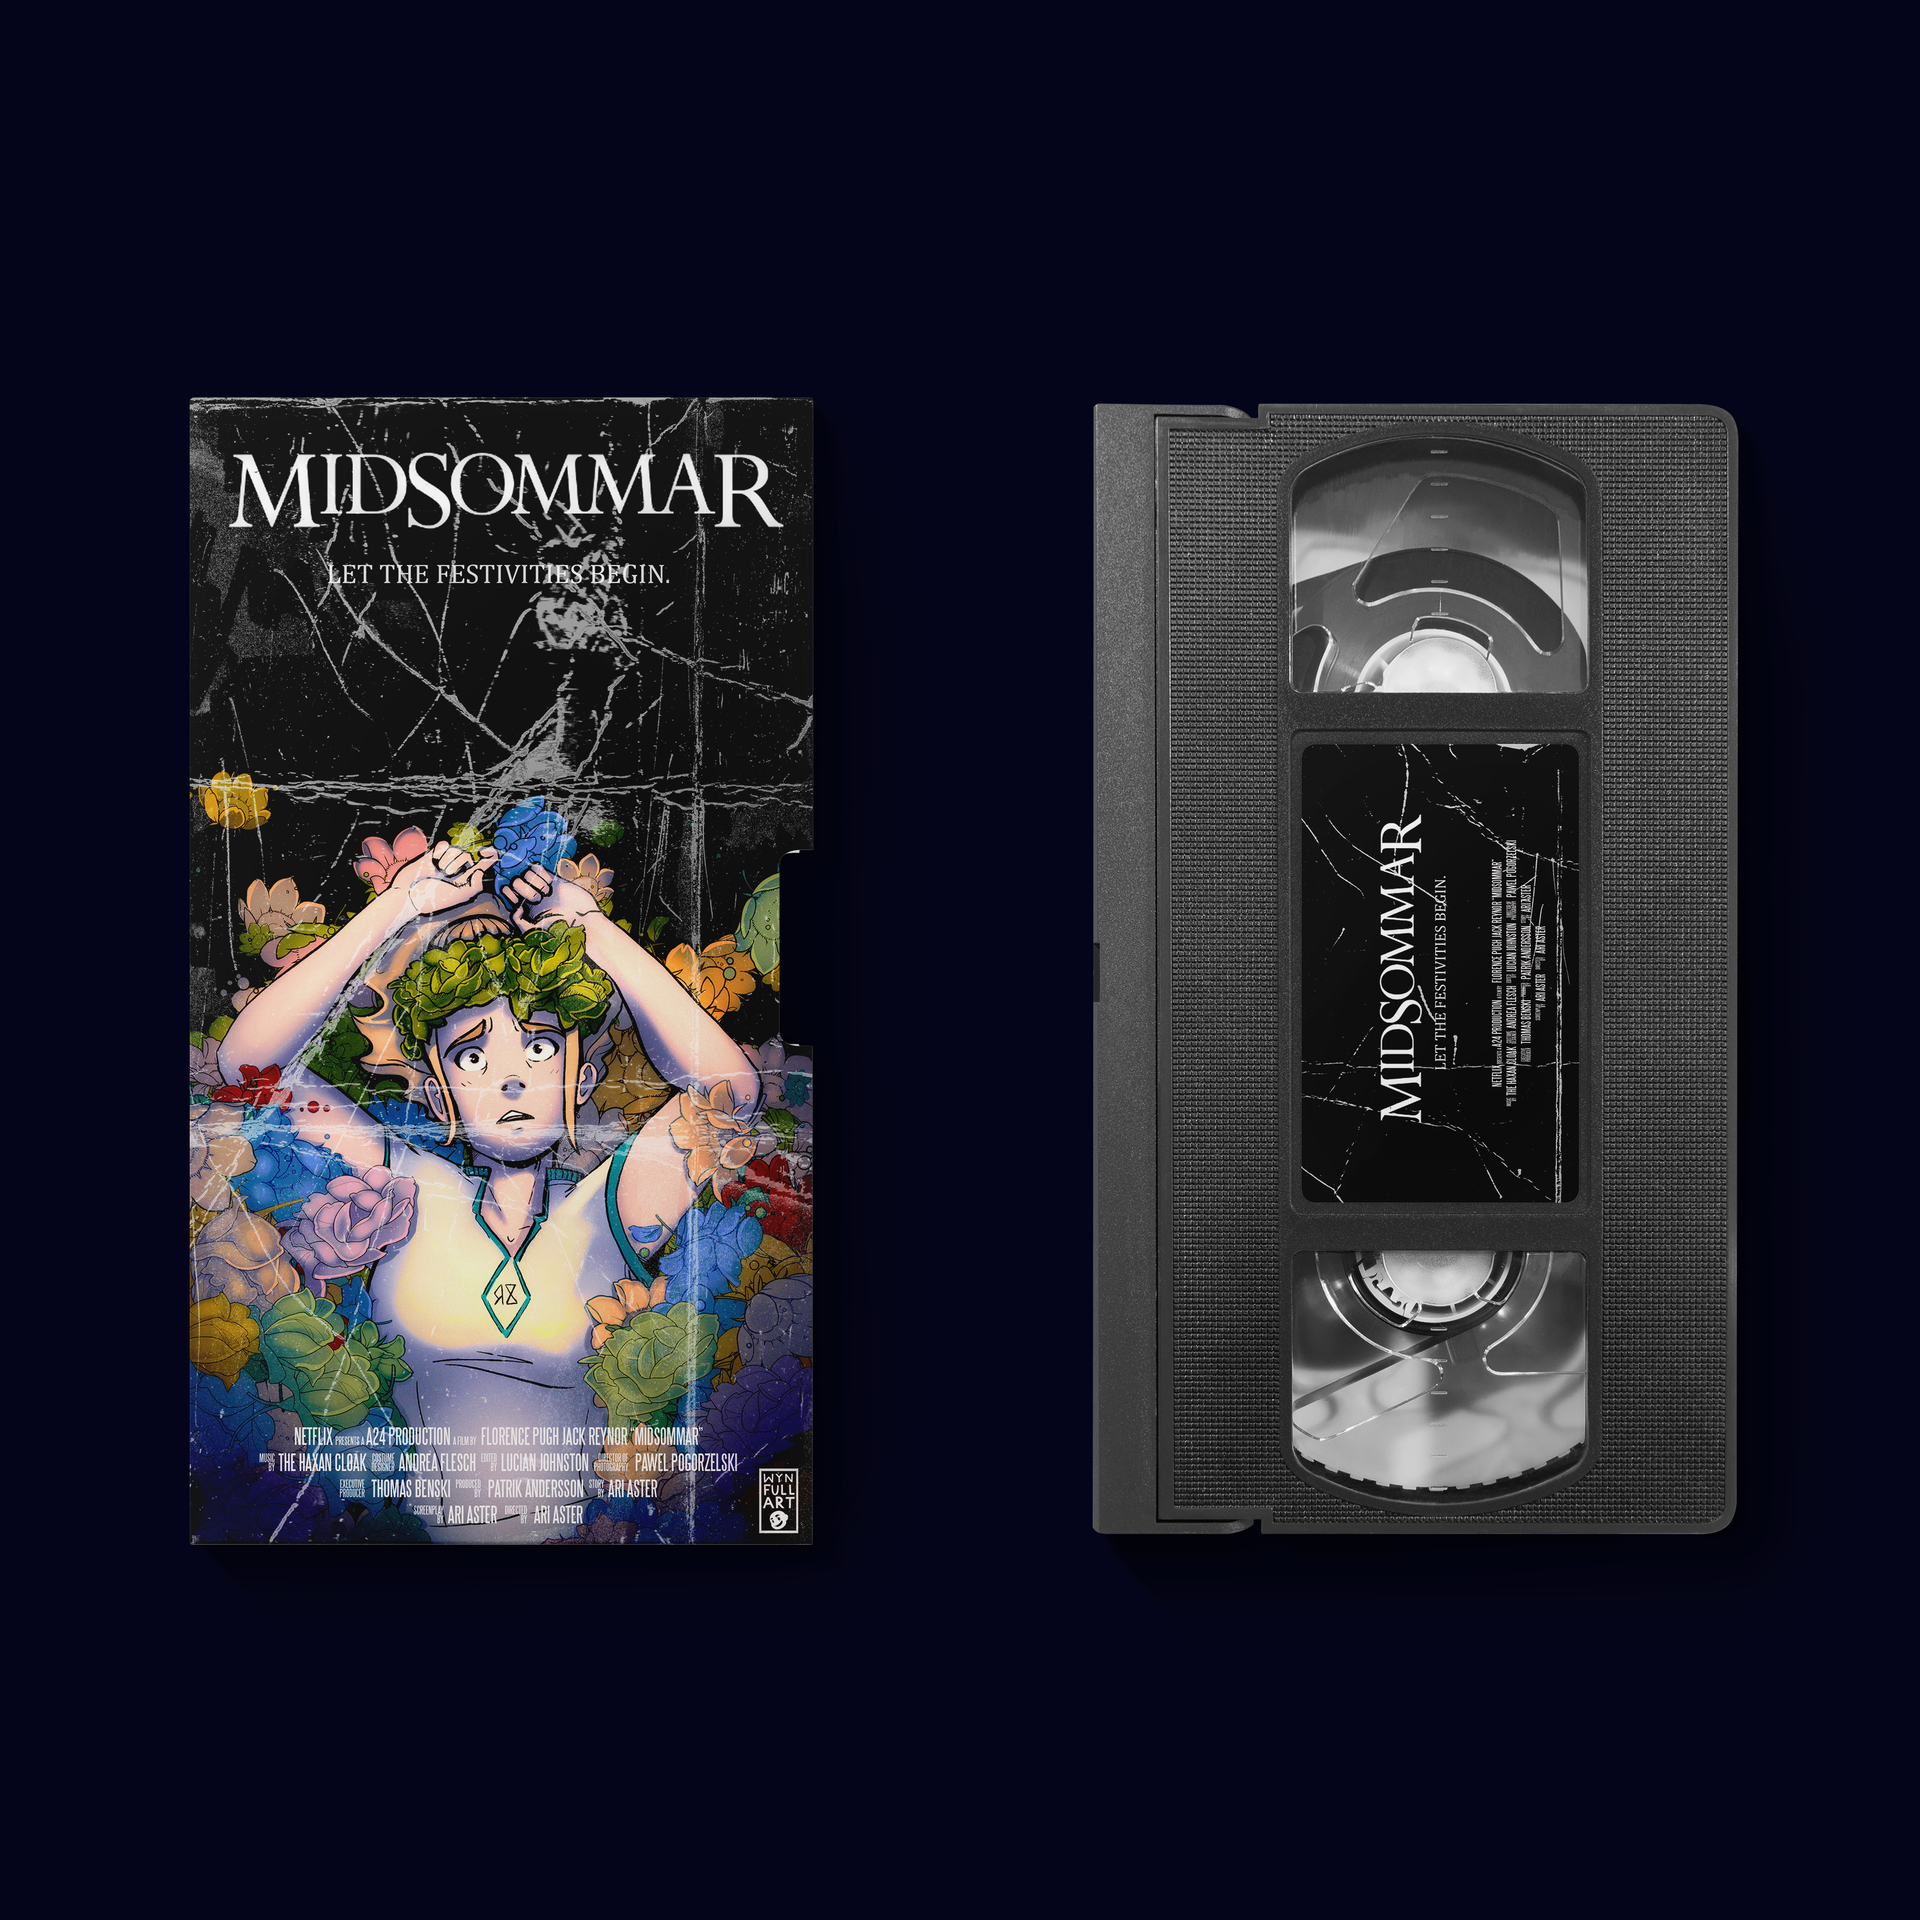 MIDSOMMAR VHS COVER